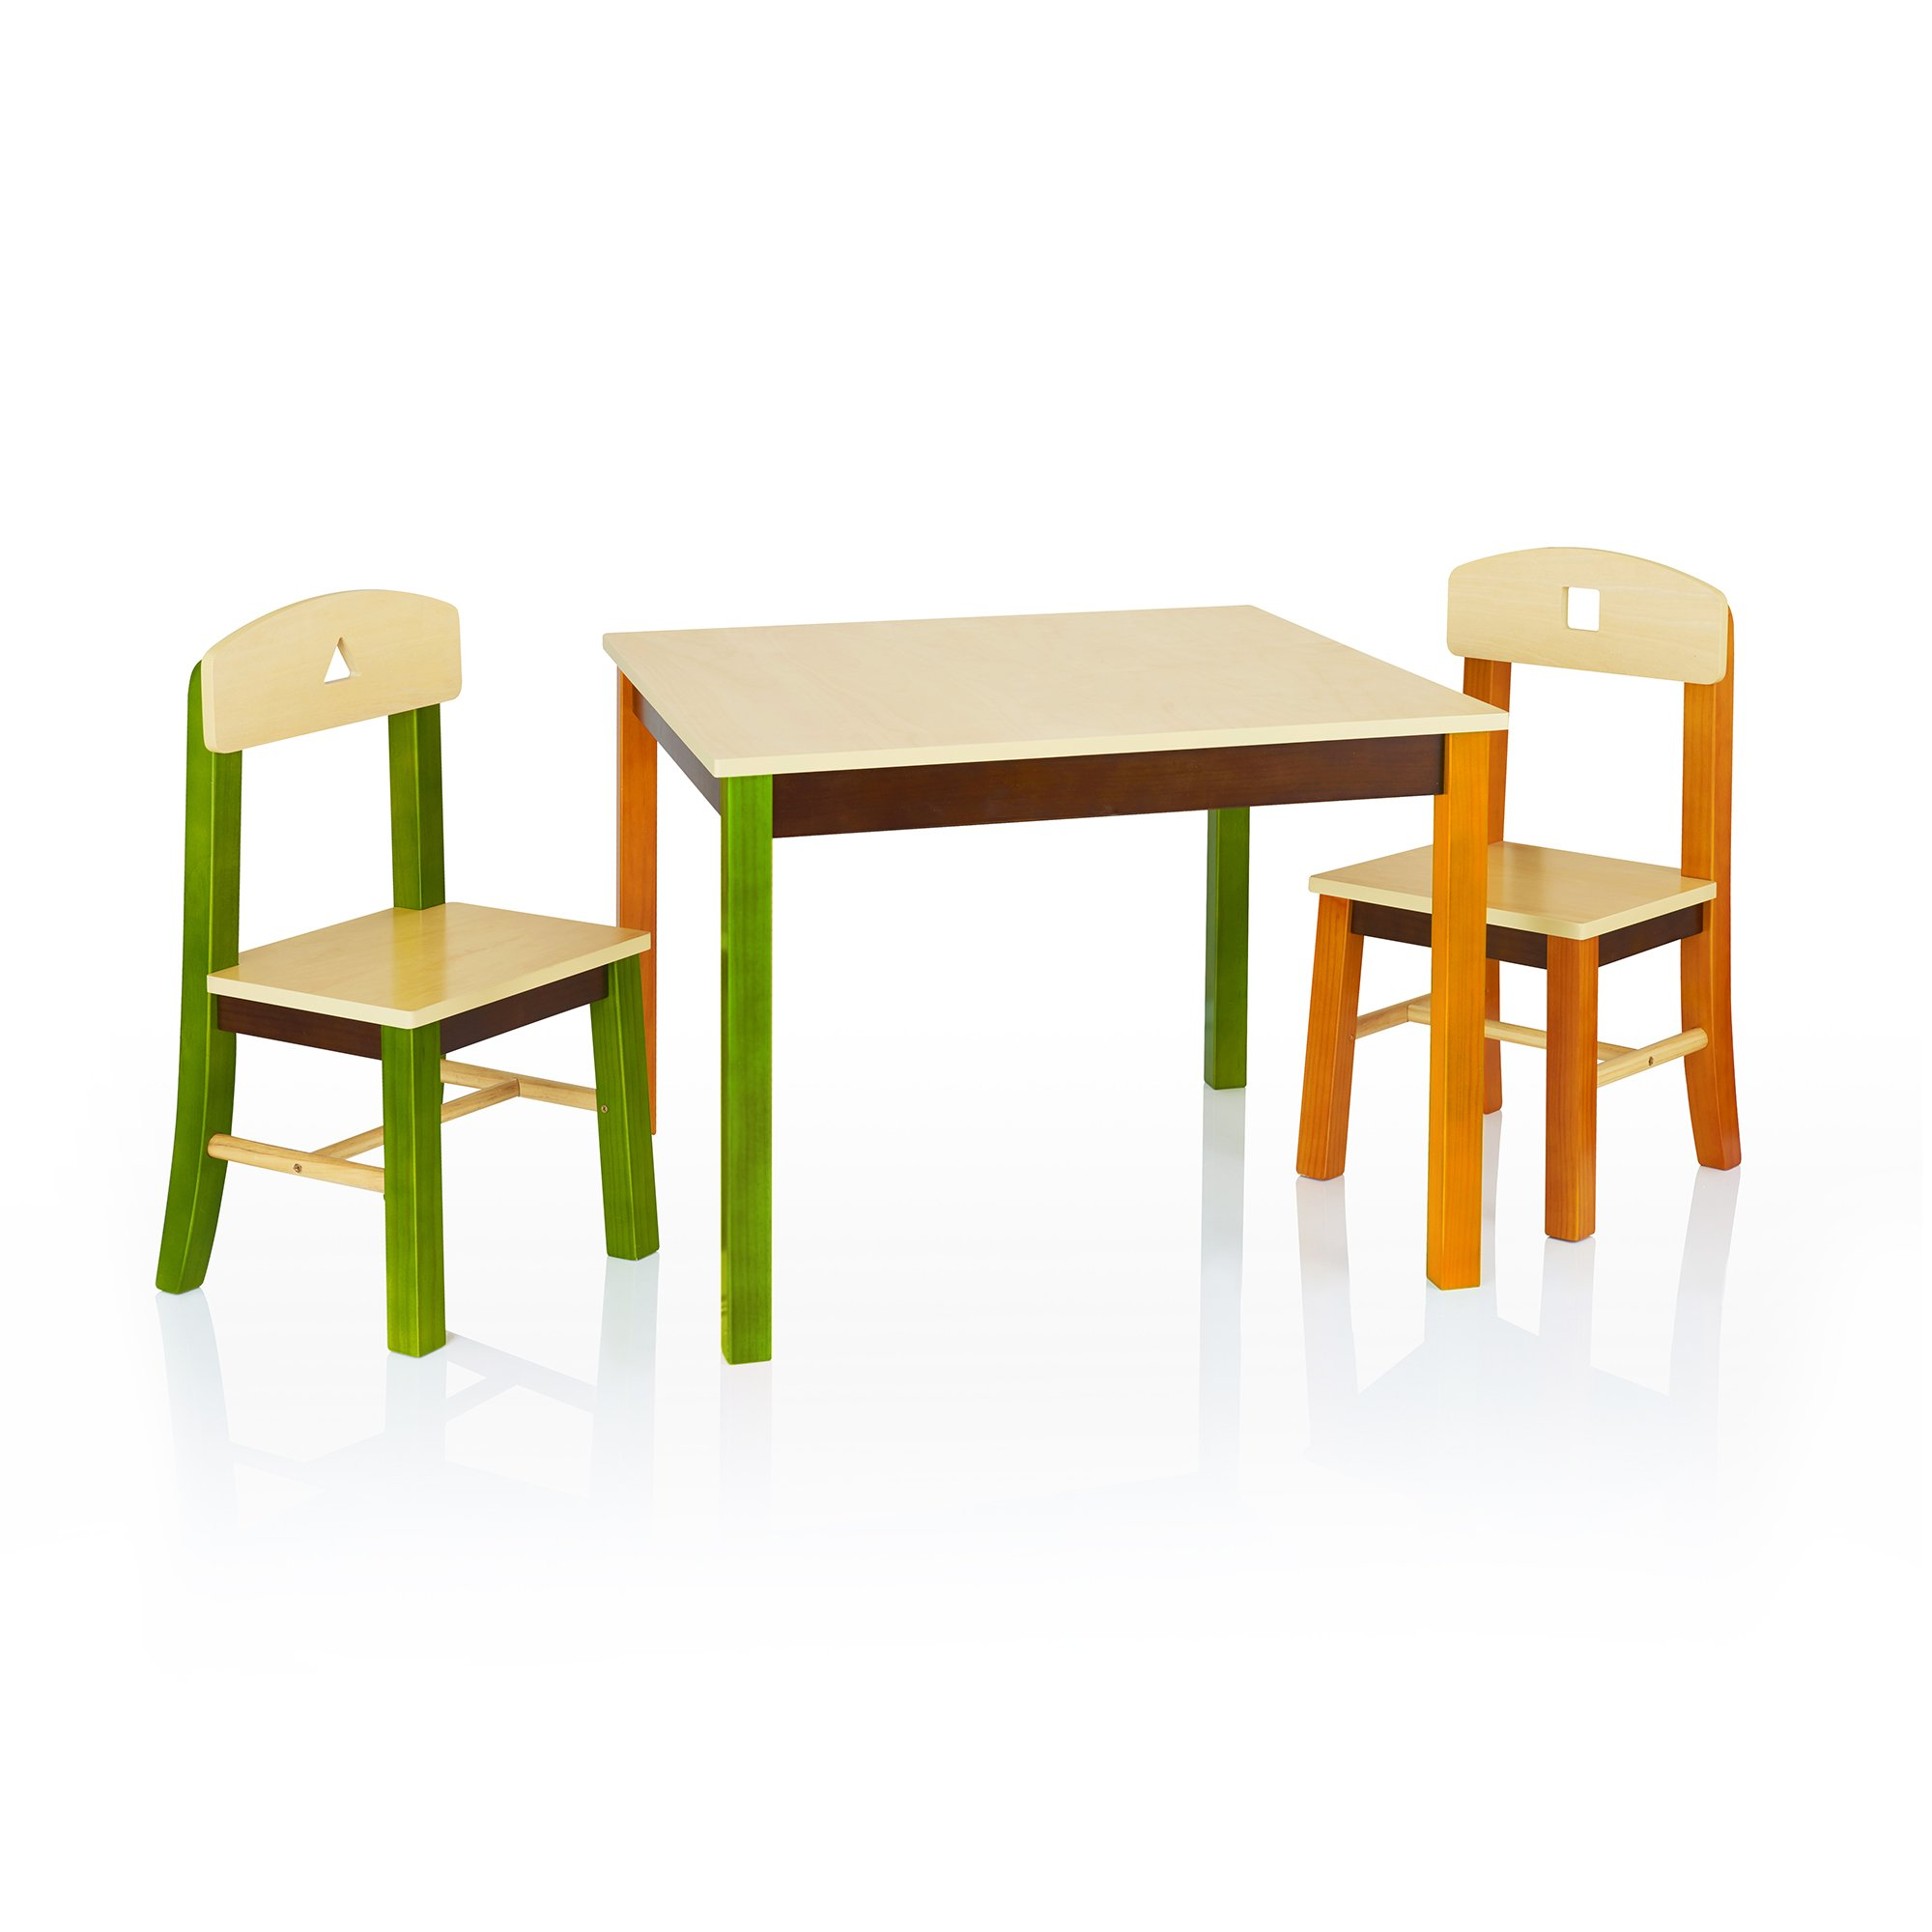 Guidecraft See and Store Table and Chair Set - Kids Furniture, Children's Study Activity Table by Guidecraft (Image #1)